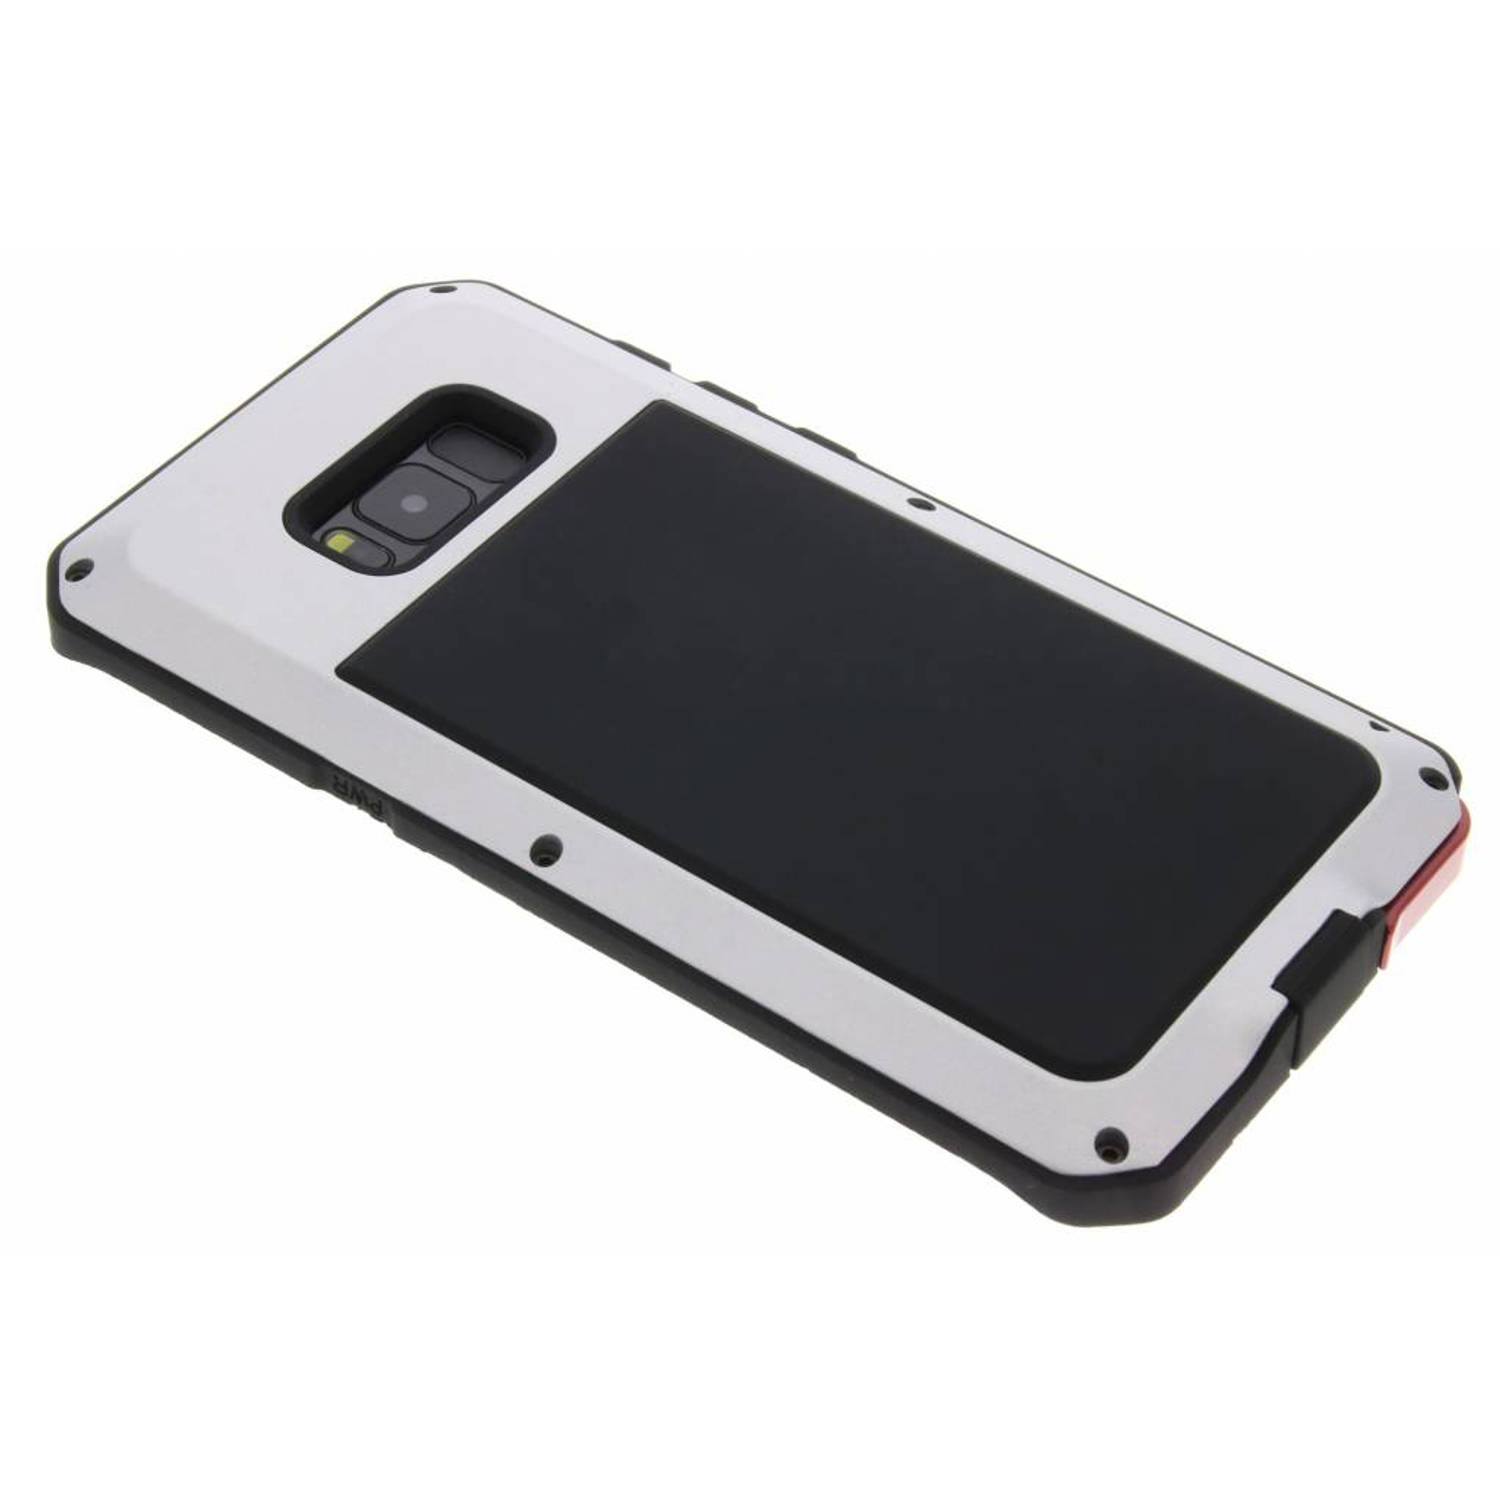 Zilveren giant extreme protect case samsung galaxy s8 plus